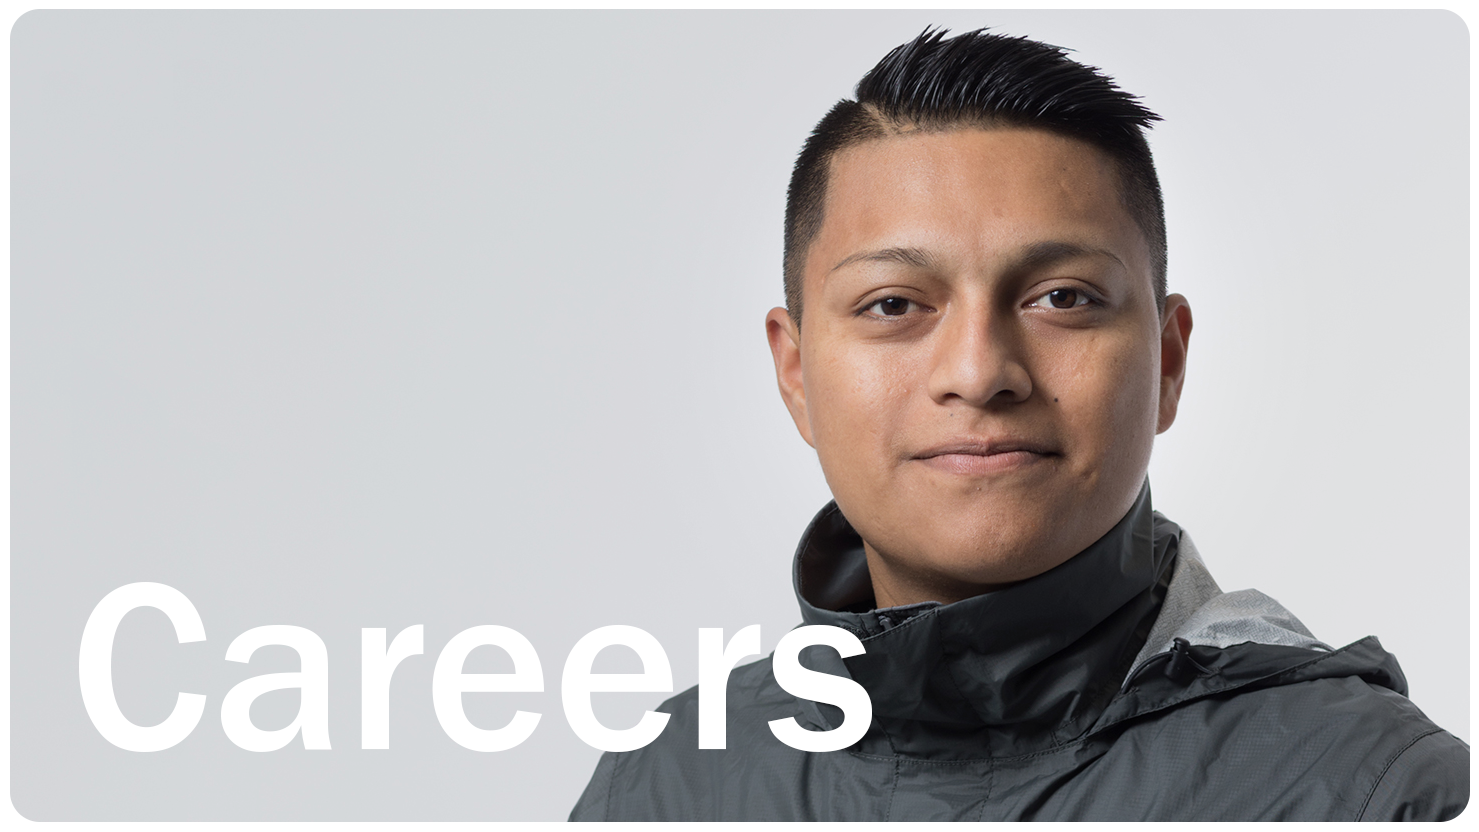 About Simmons Foods Careers, links to Careers Page